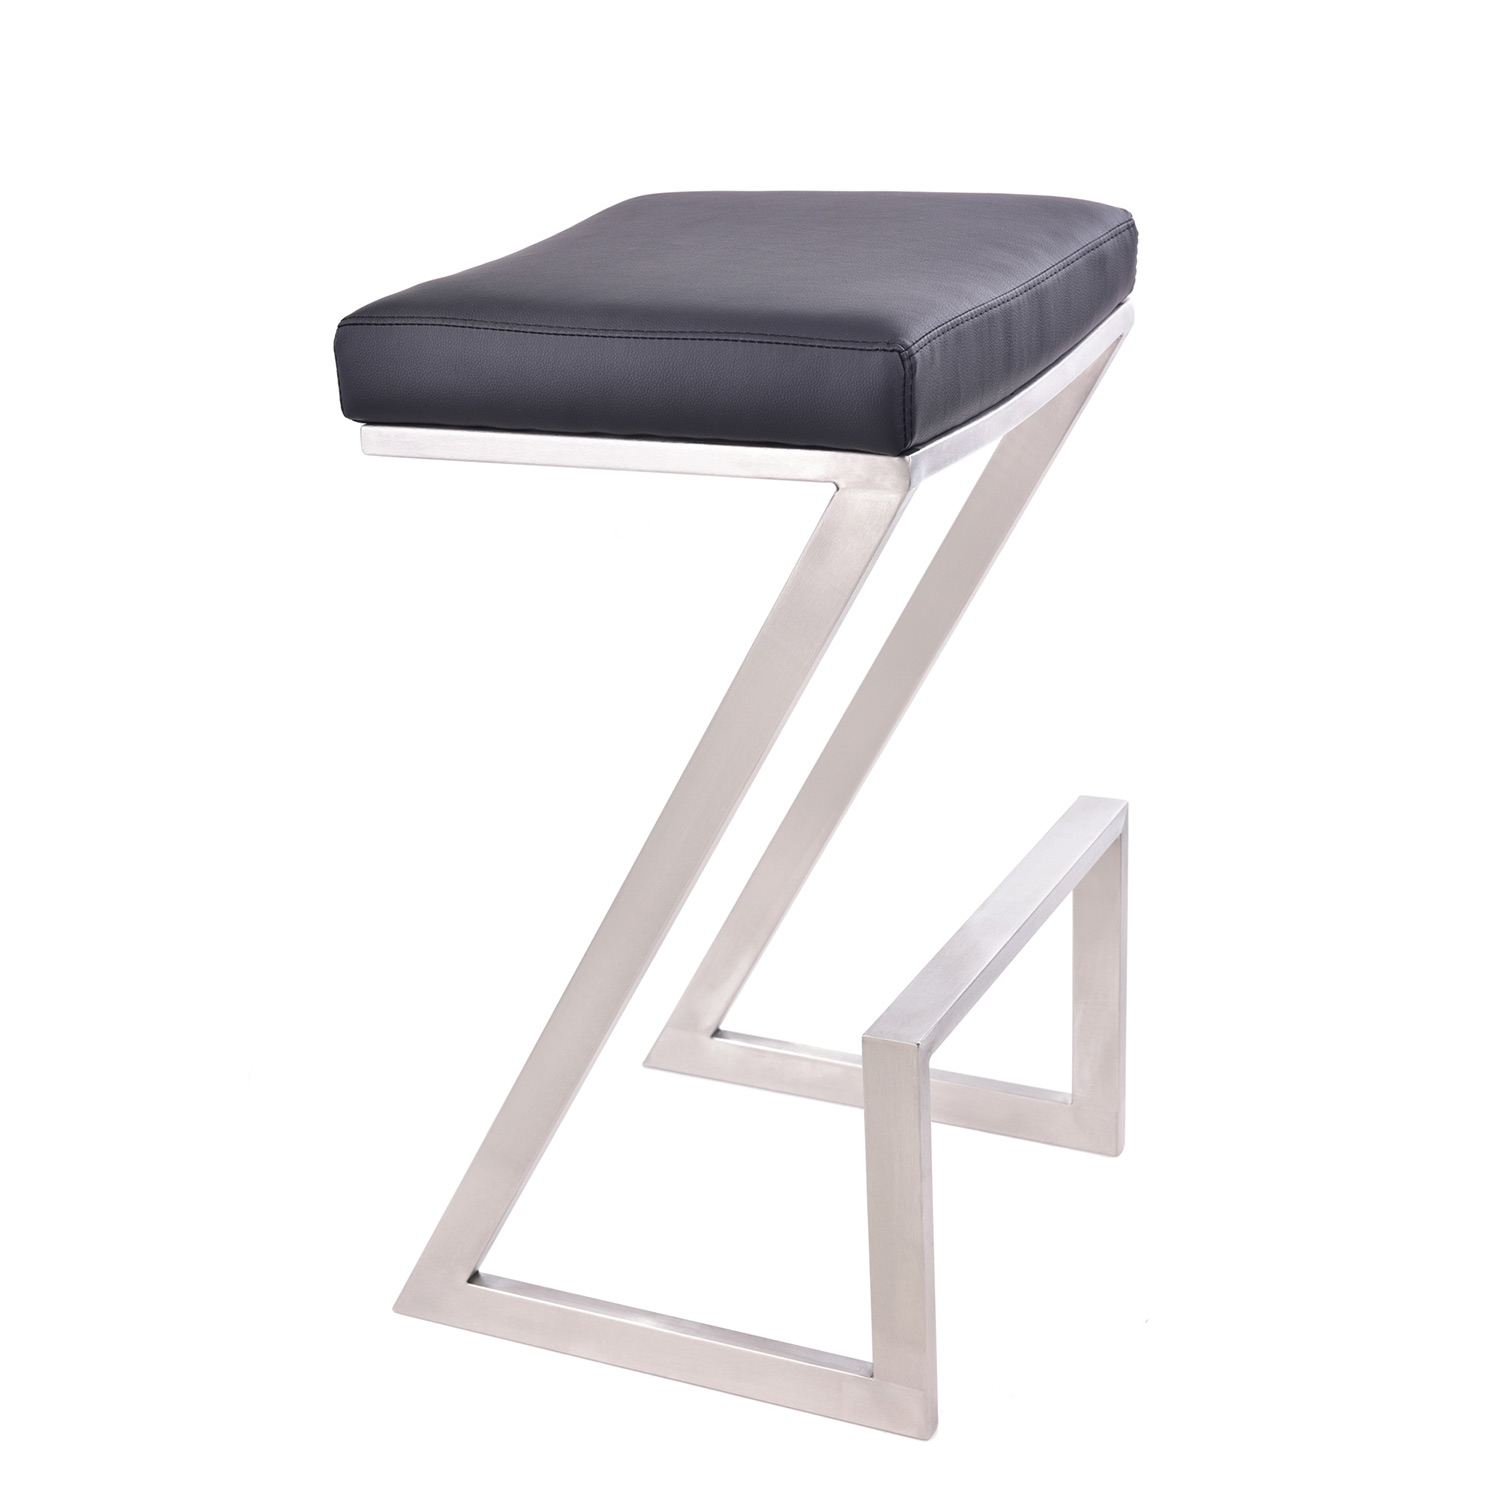 Attractive 30 Inch Backless Bar Stools Part - 13: Armen Living Atlantis 30-inch Backless Bar Stool - Black Leatherette